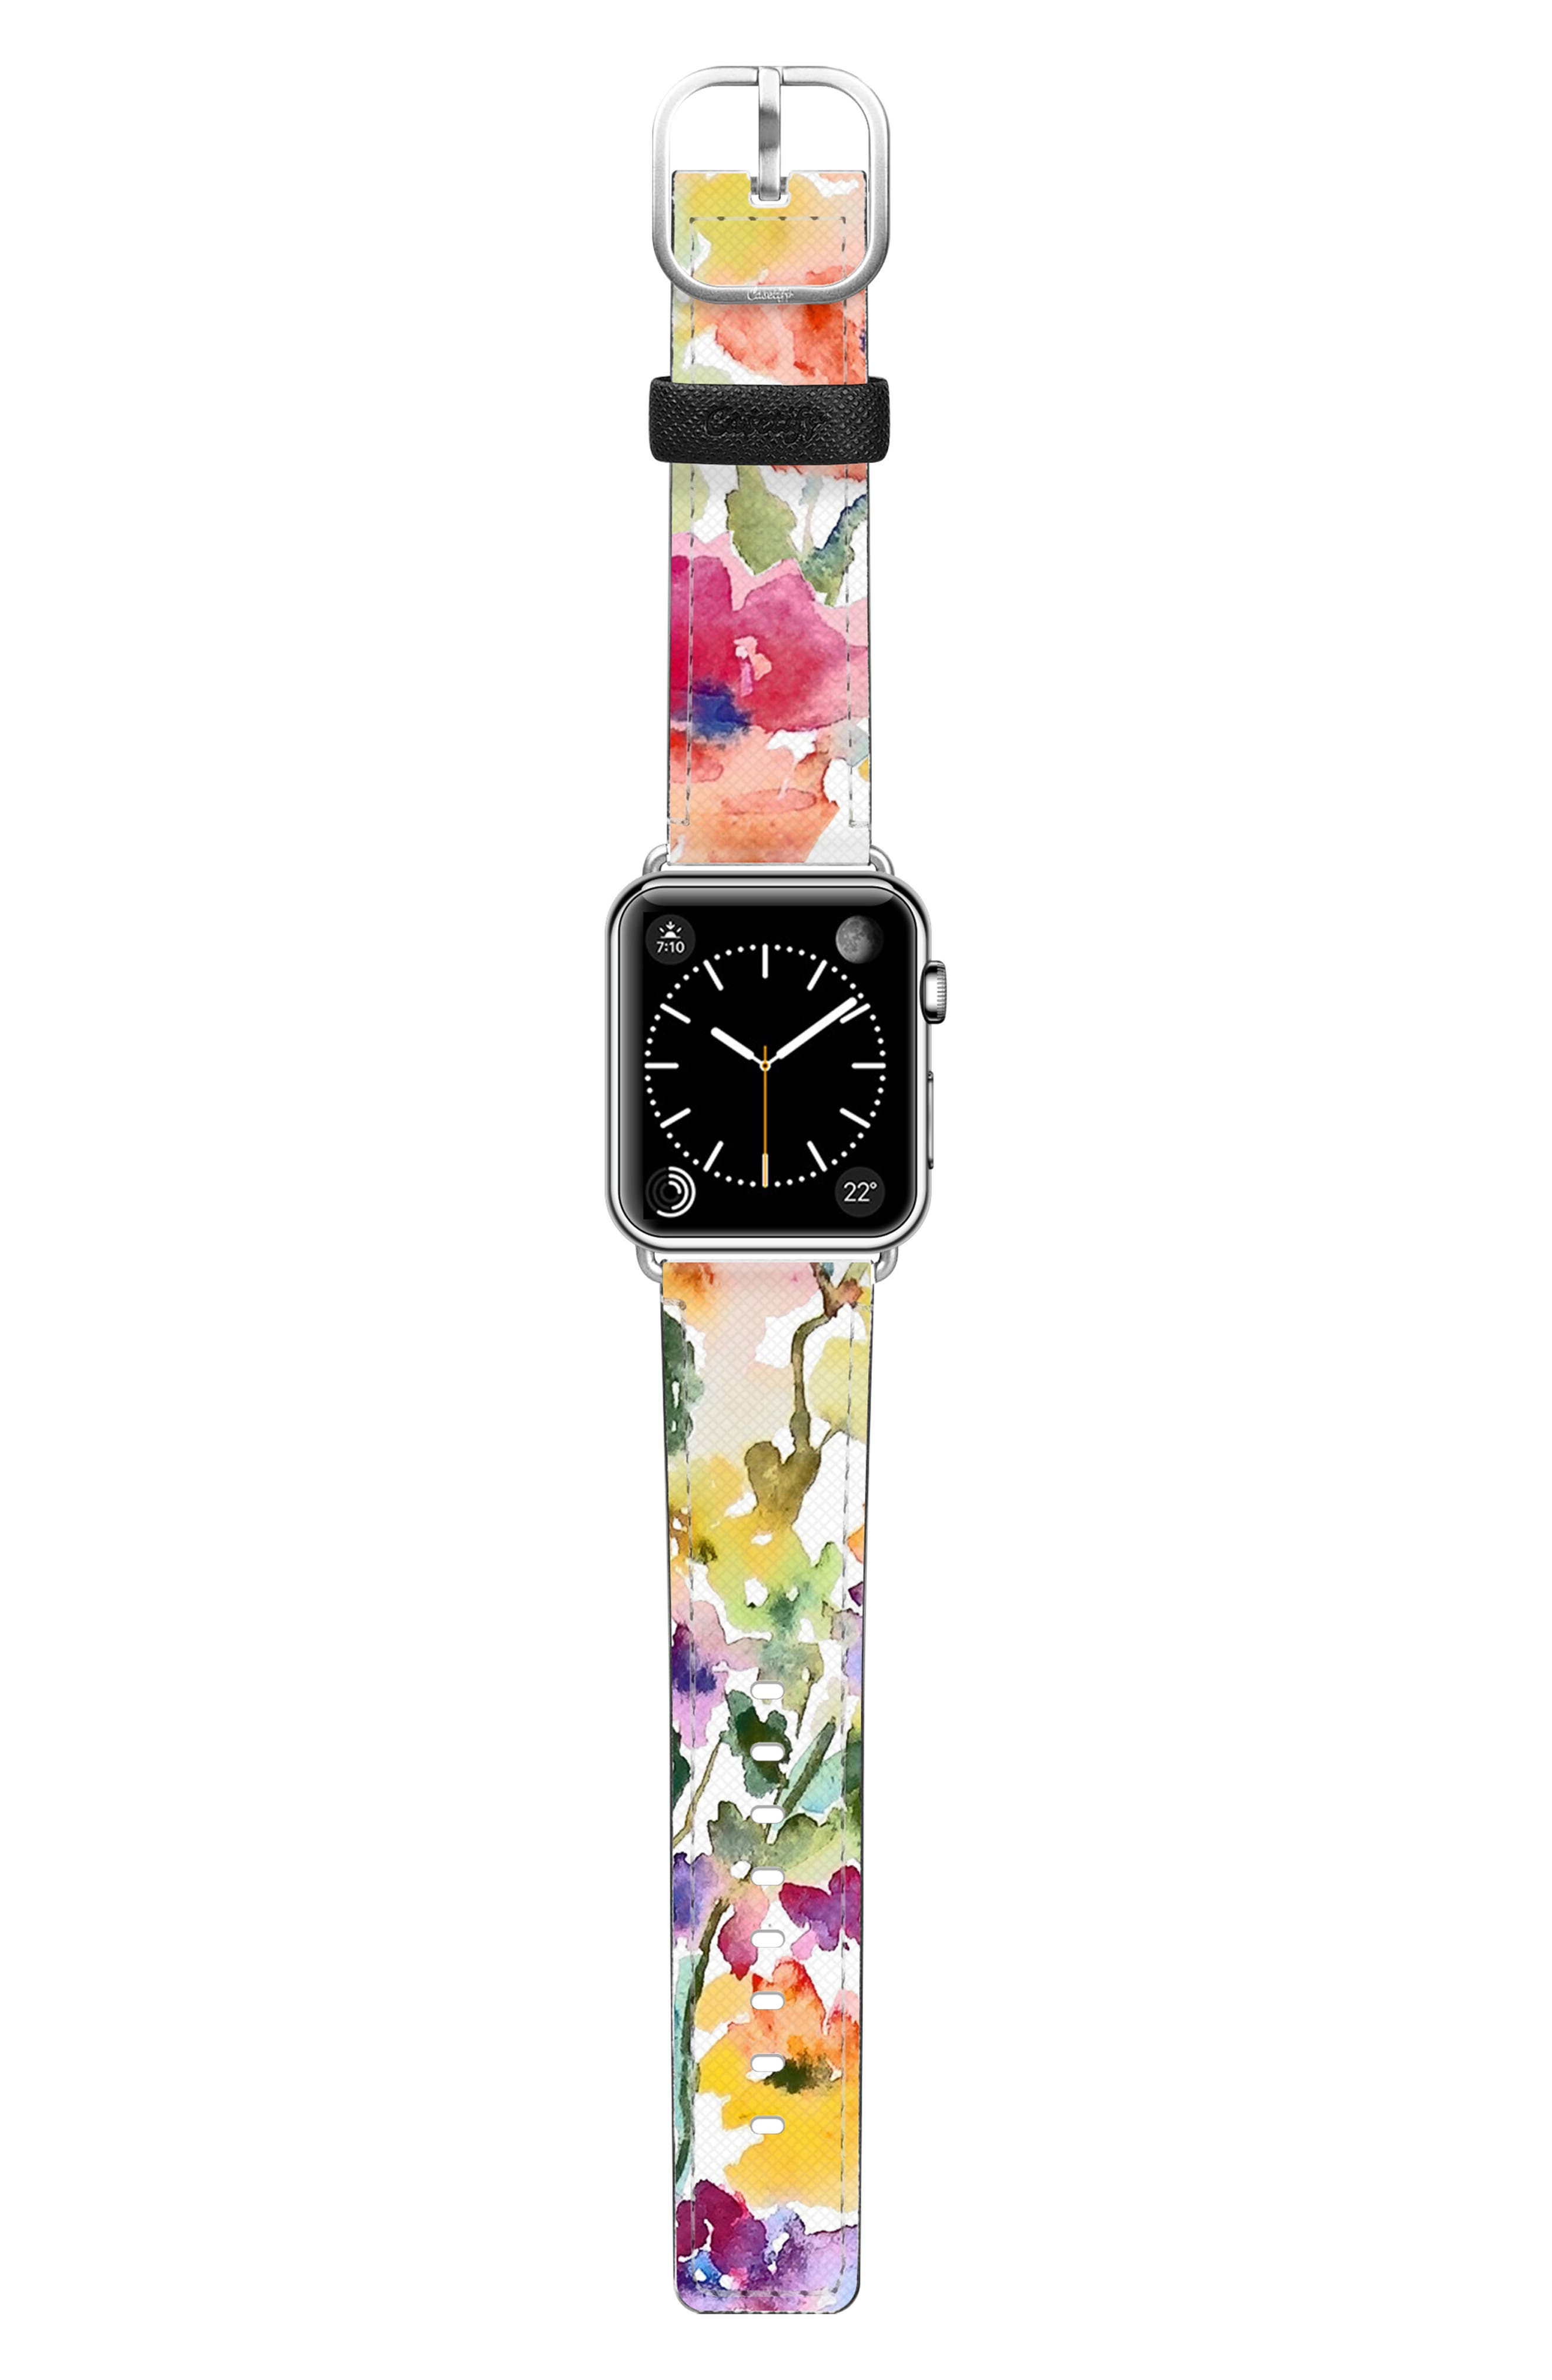 SAFFIANO FROM THE GARDEN FAUX LEATHER APPLE WATCH STRAP